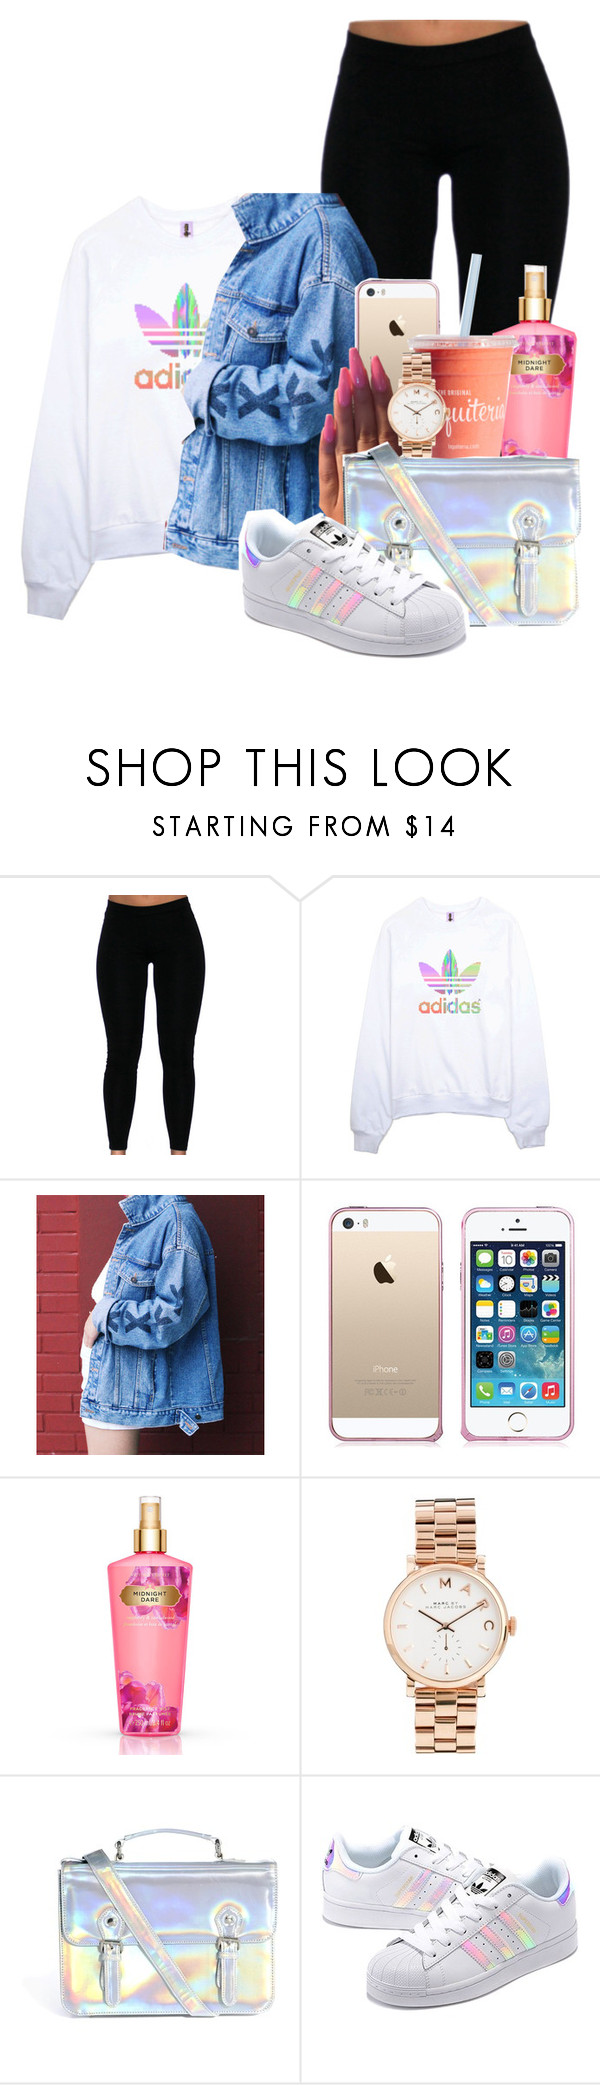 """""""Always Feel Alive"""" by melaninprincess-16 ❤ liked on Polyvore featuring adidas, Victoria's Secret, Marc by Marc Jacobs, ASOS and adidas Originals"""